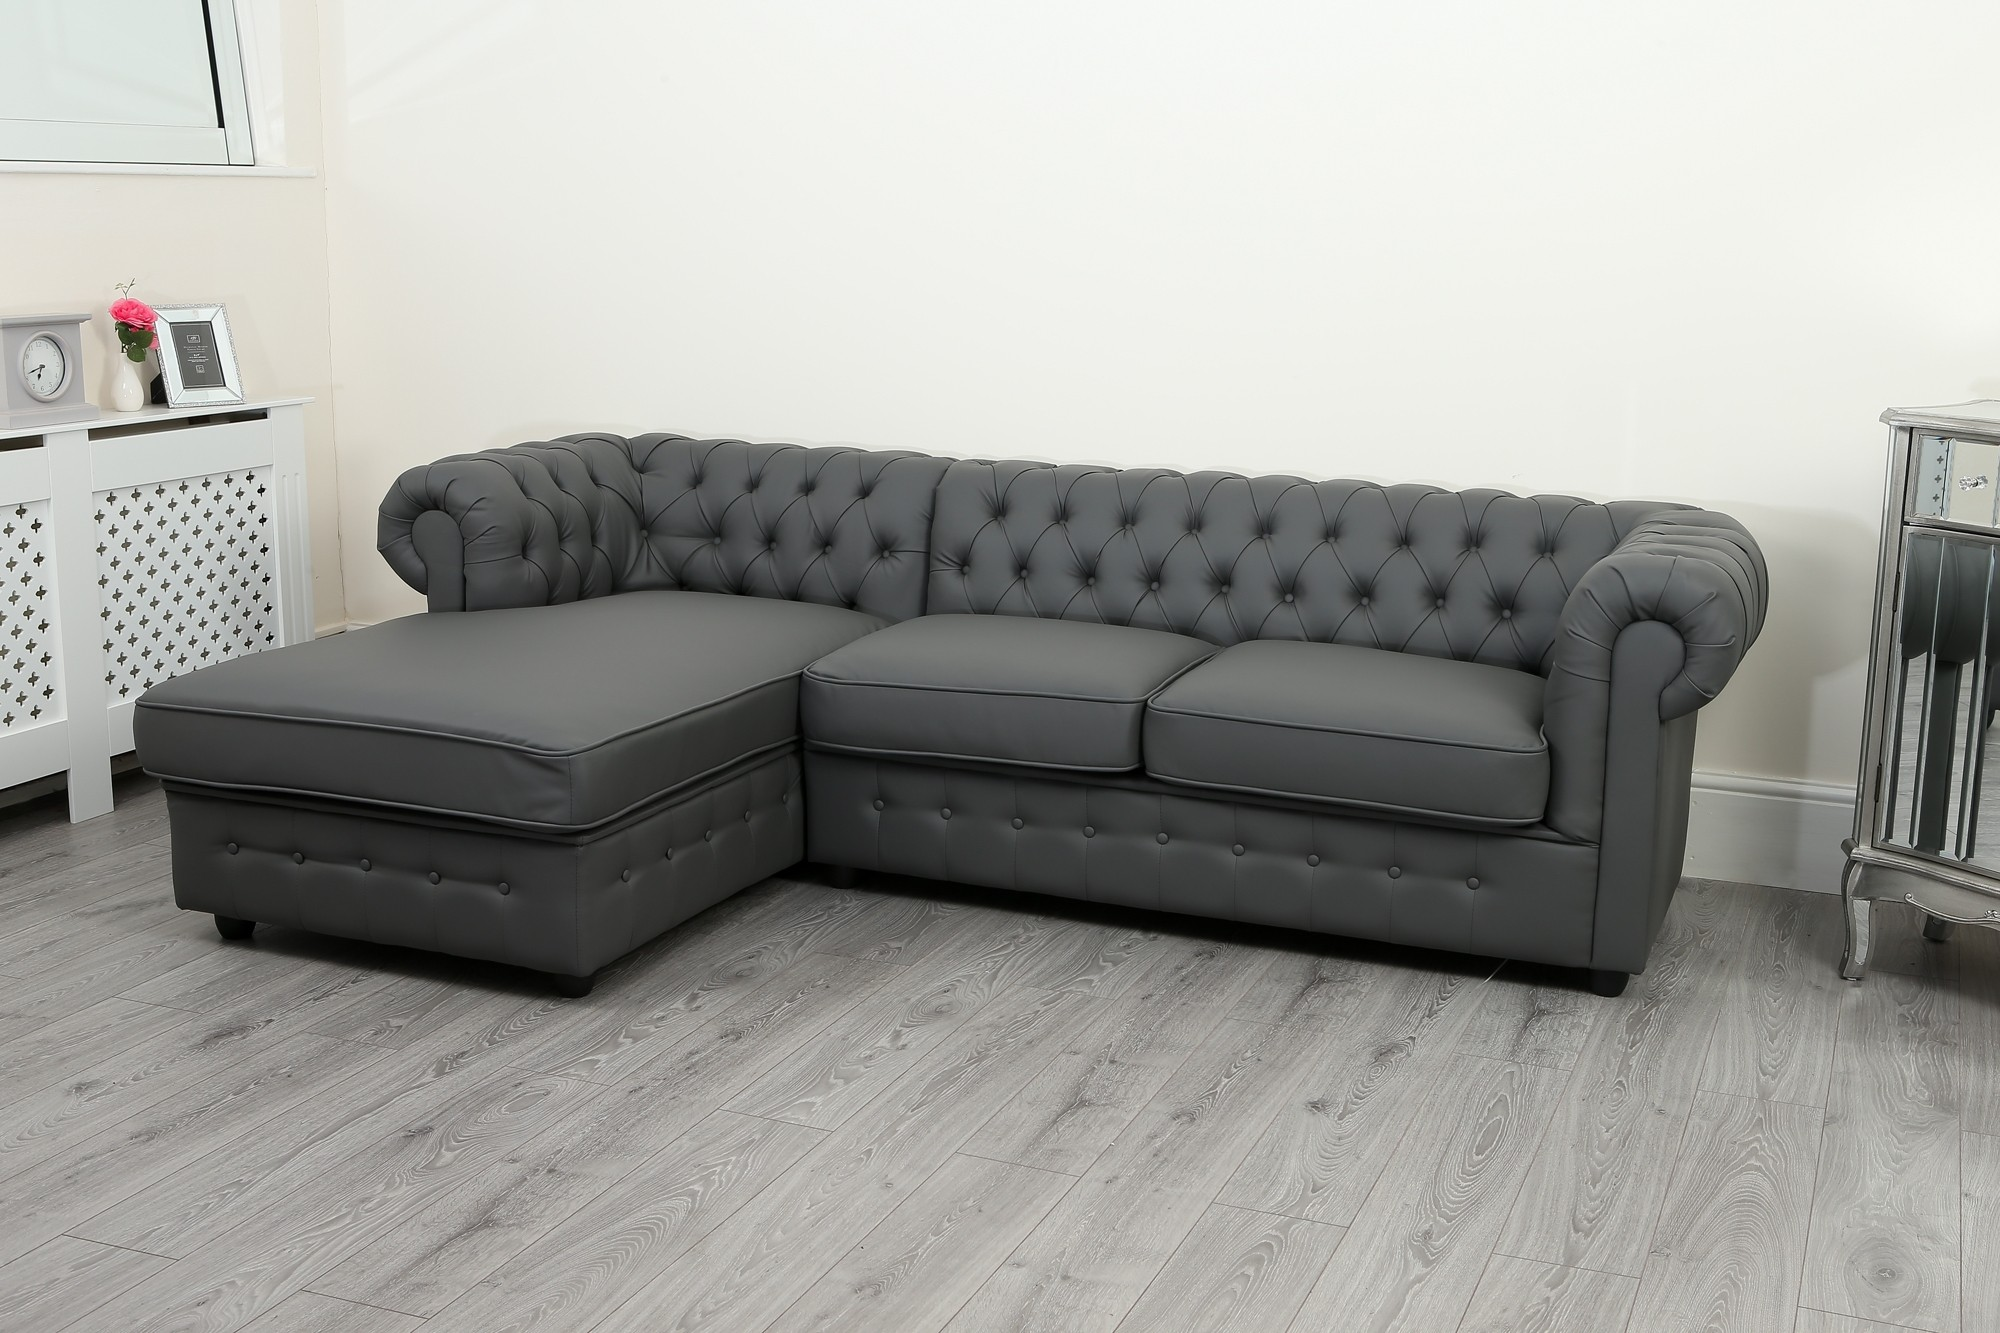 Chesterfield Sofa Empire Chesterfield Corner Sofa In Grey Pu Leather Abreo